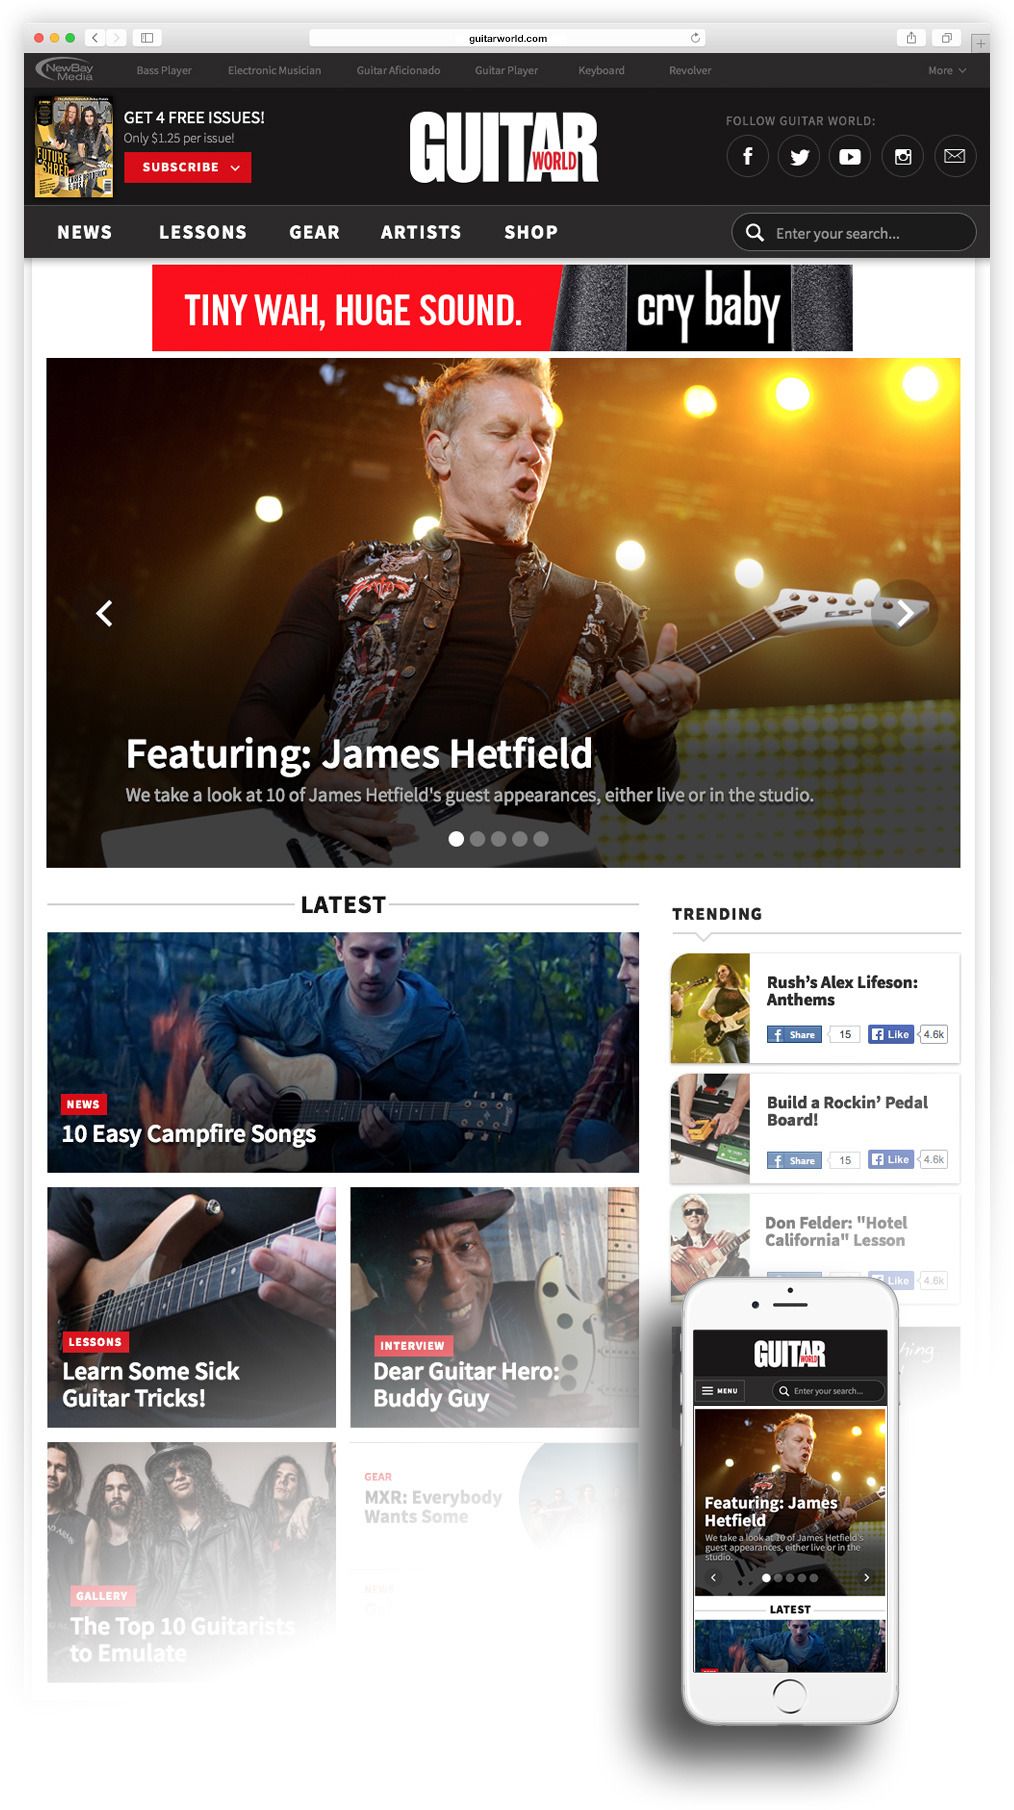 New GuitarWorld homepage on desktop and mobile